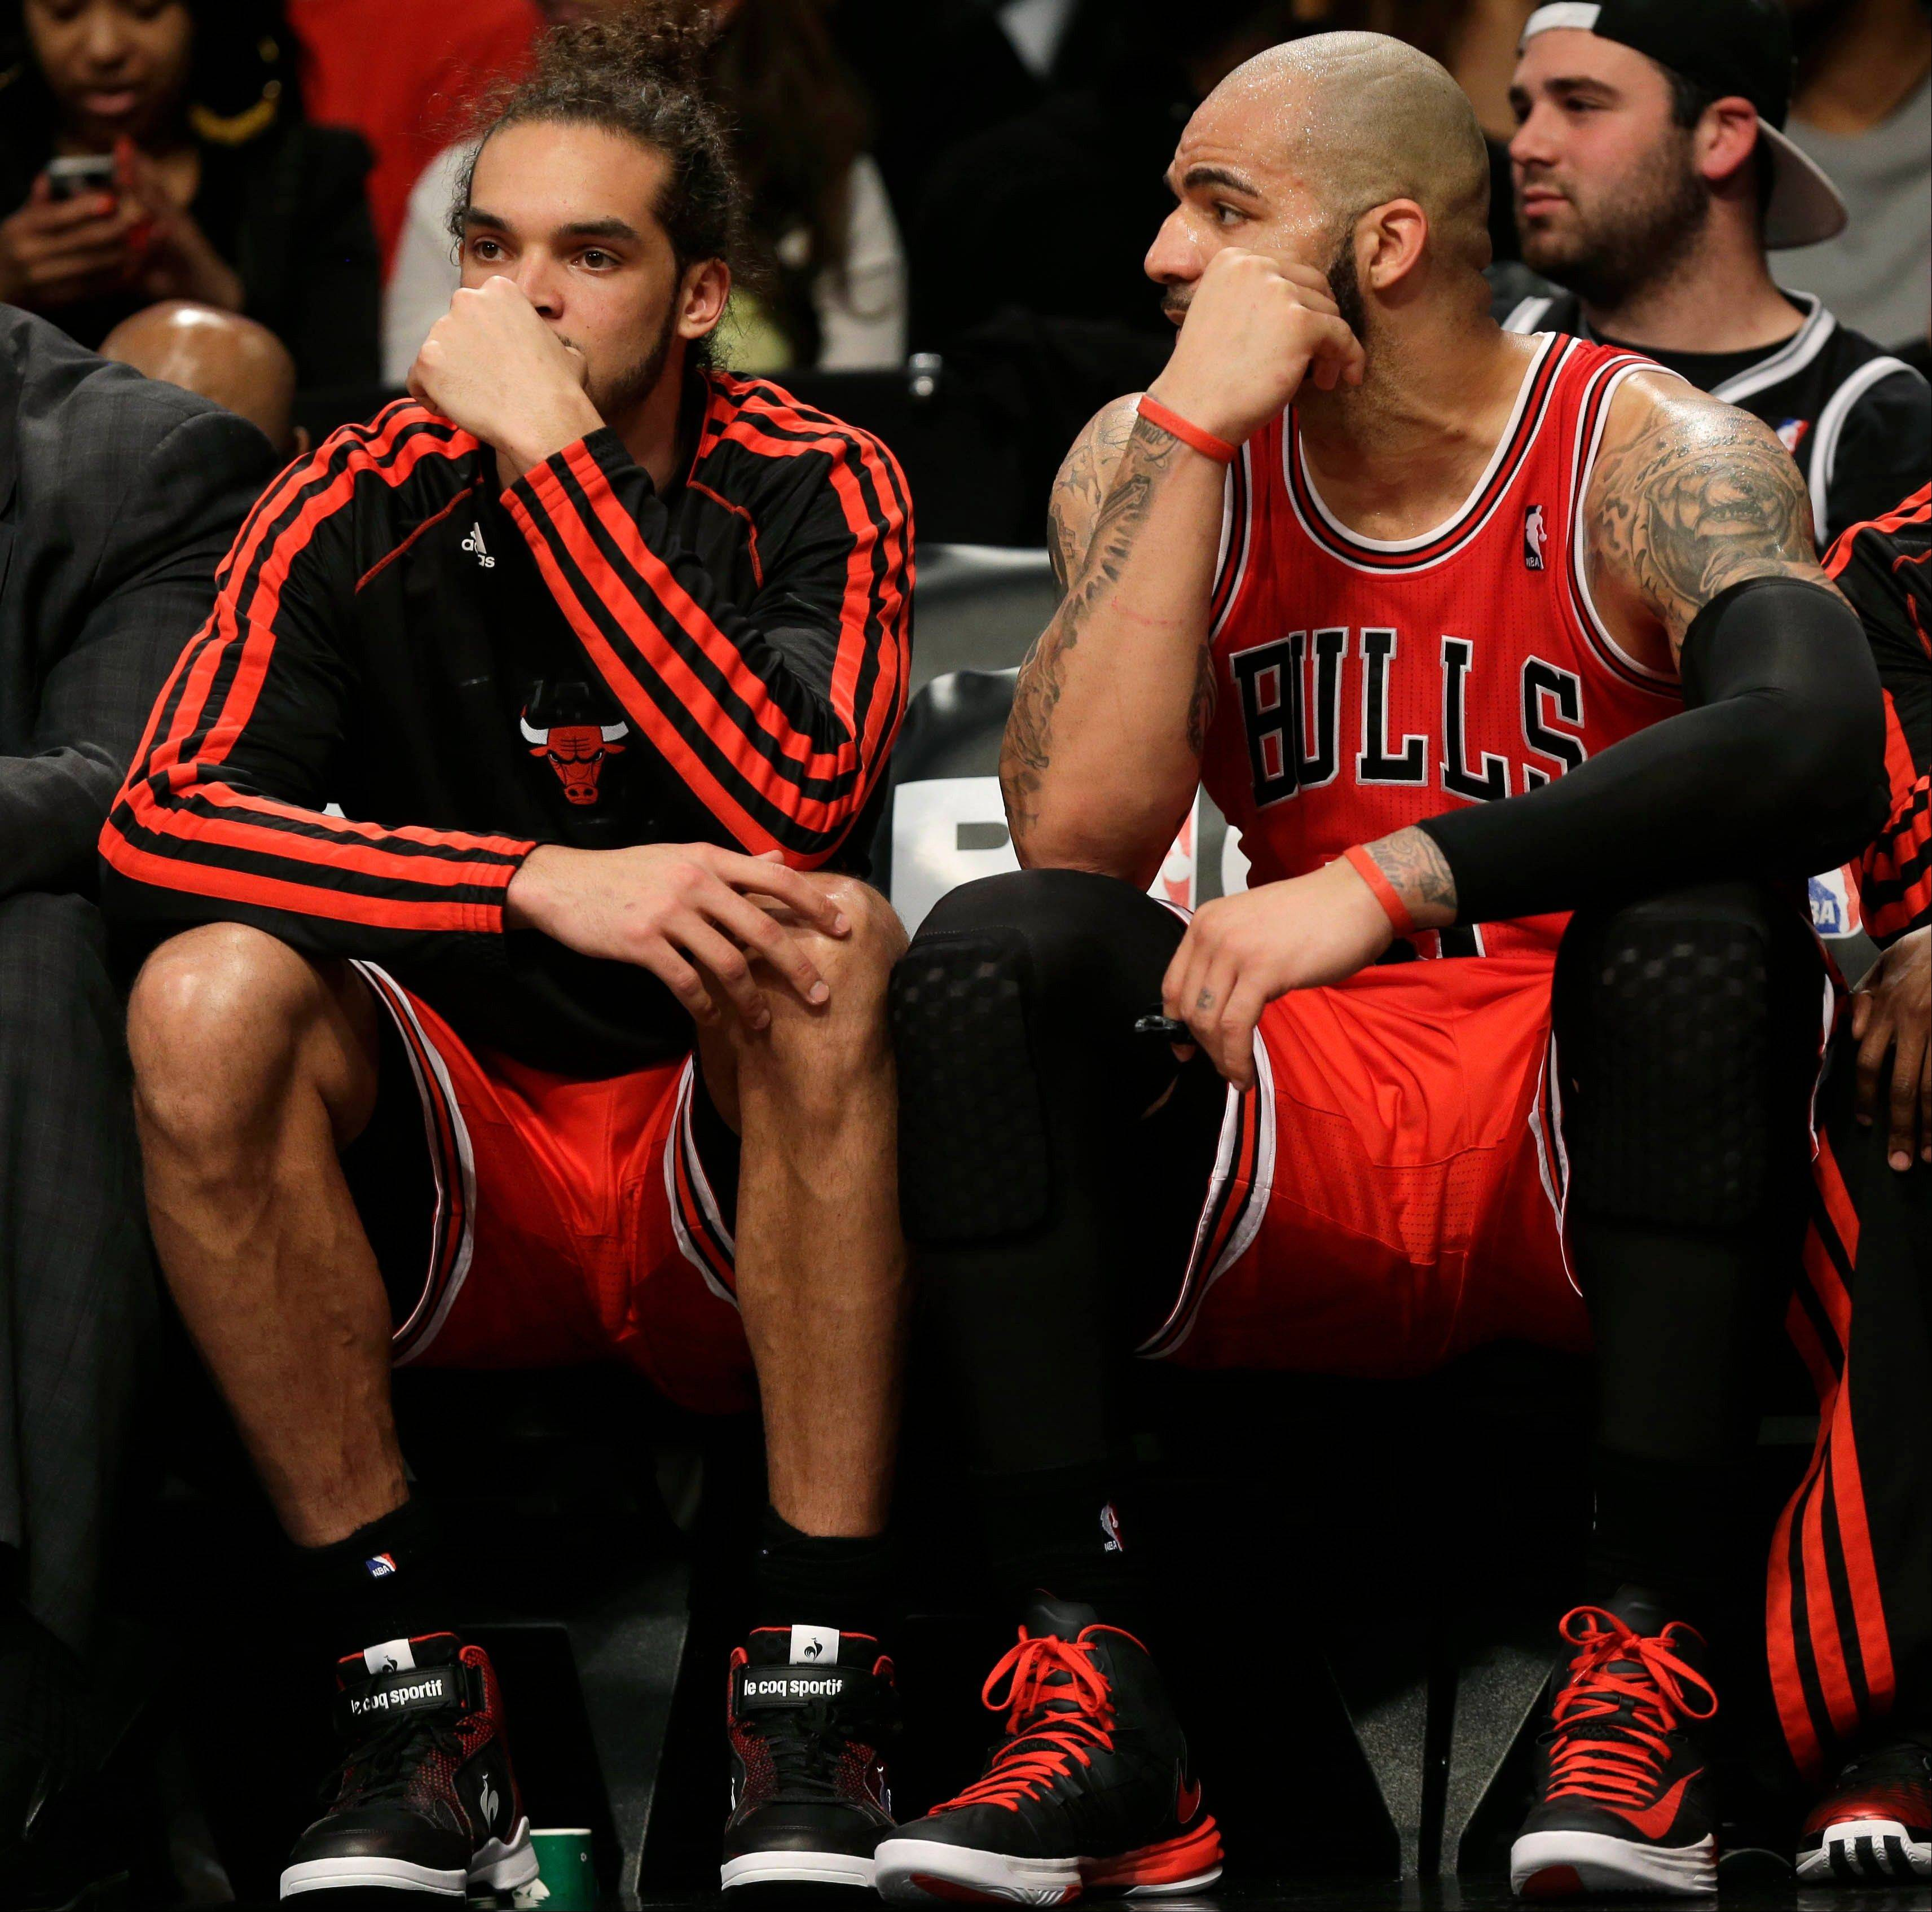 The Bulls' Joakim Noah, left, and Carlos Boozer watch the end of the game against the Brooklyn Nets from the bench during the second half of Game 1 in the first round of the NBA basketball playoffs at the Barclays Center, Saturday, April 20, 2013, in New York. The Nets defeated the Bulls 106-89.